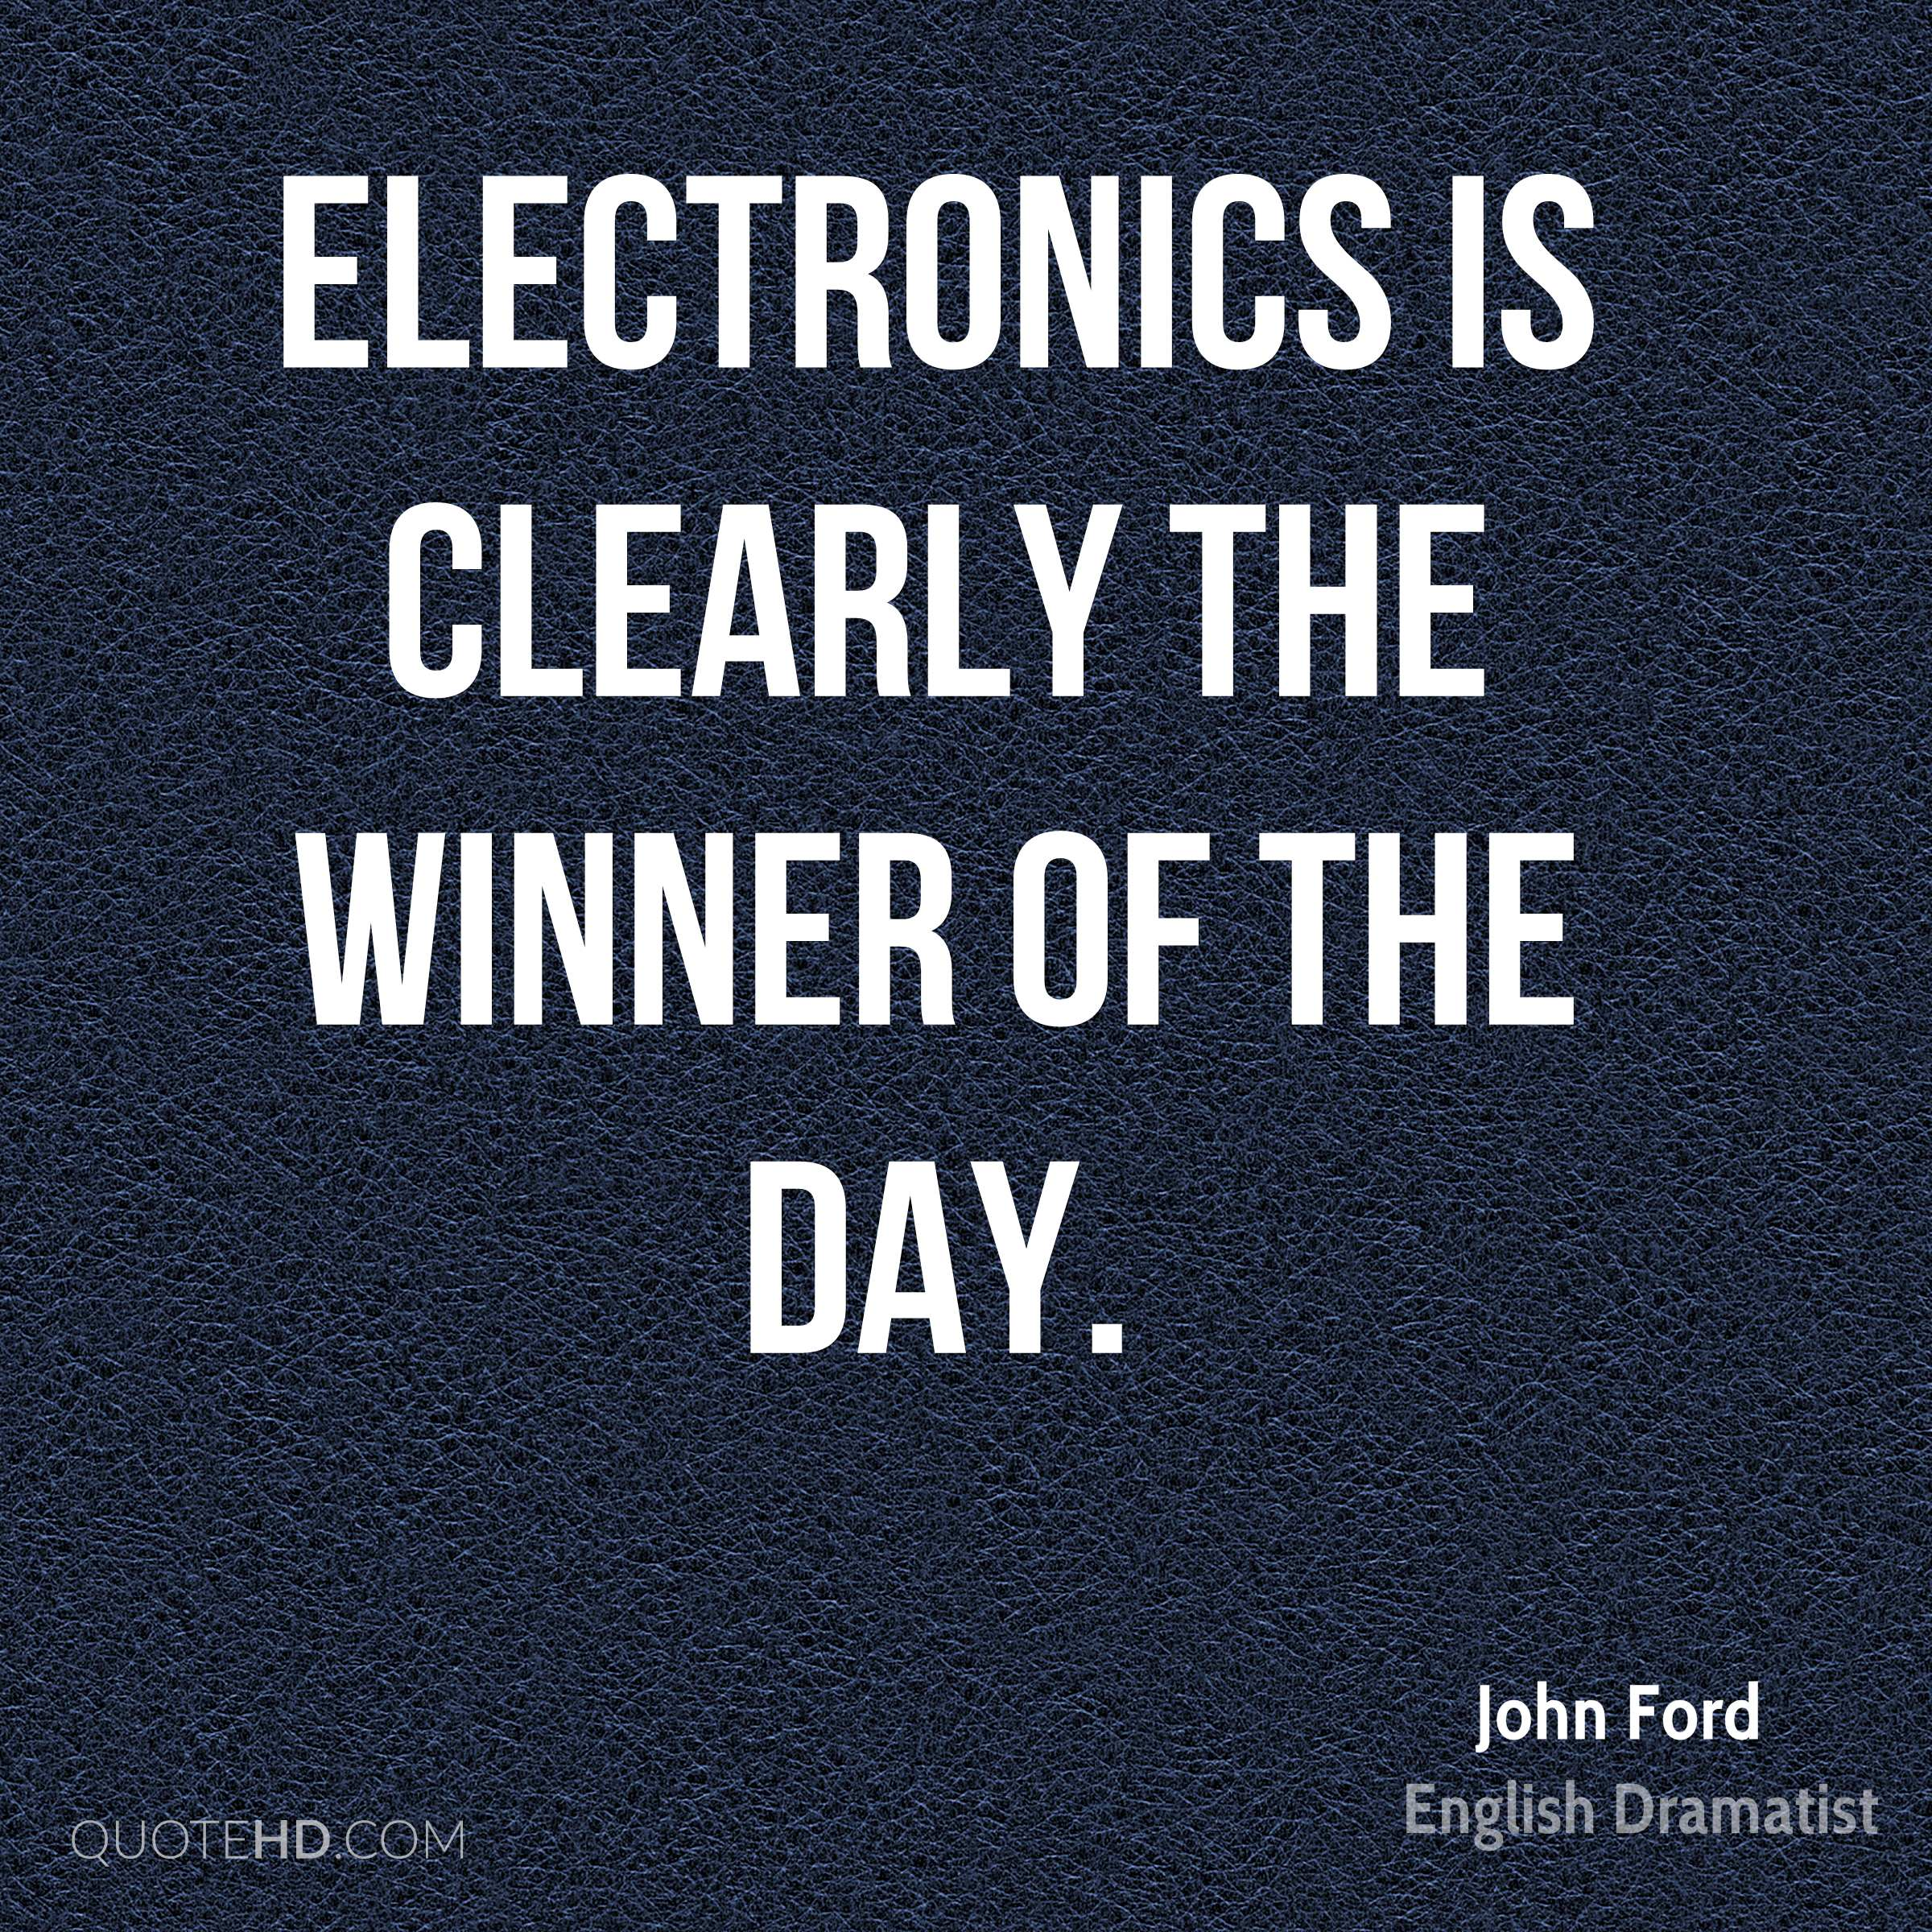 Electronics is clearly the winner of the day.